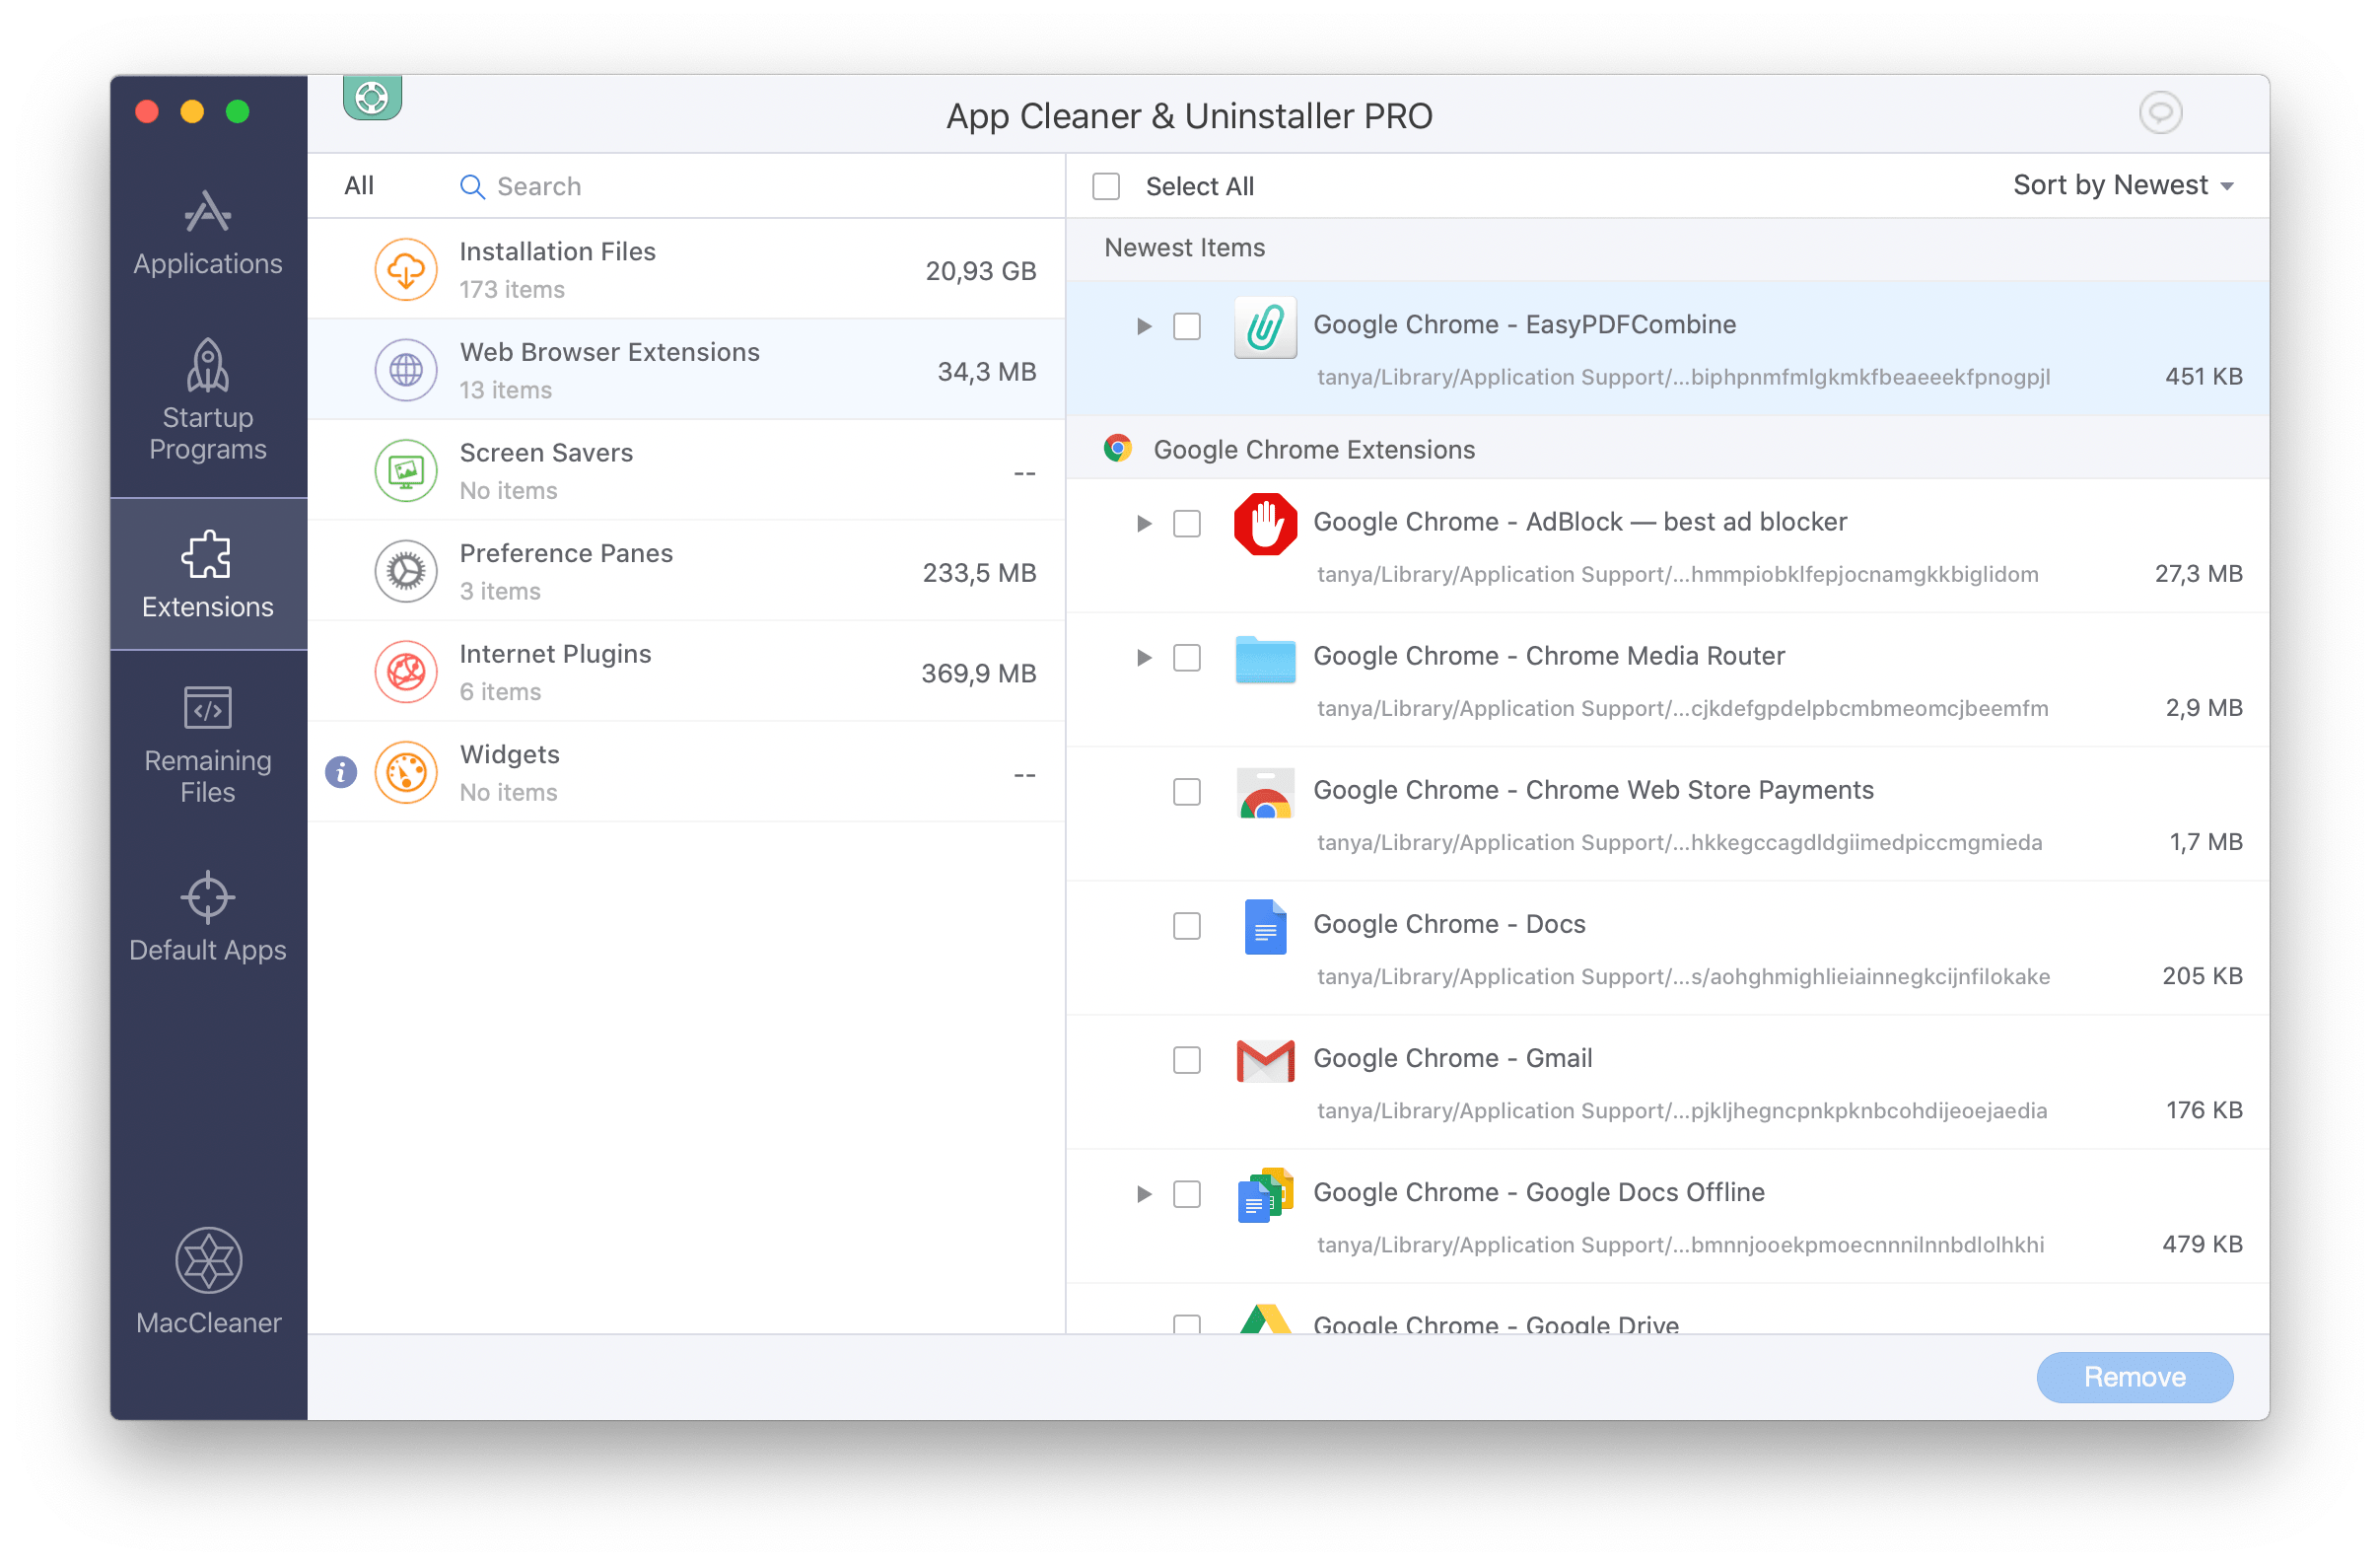 Web Browser Extensions section in App Cleaner & Uninstaller